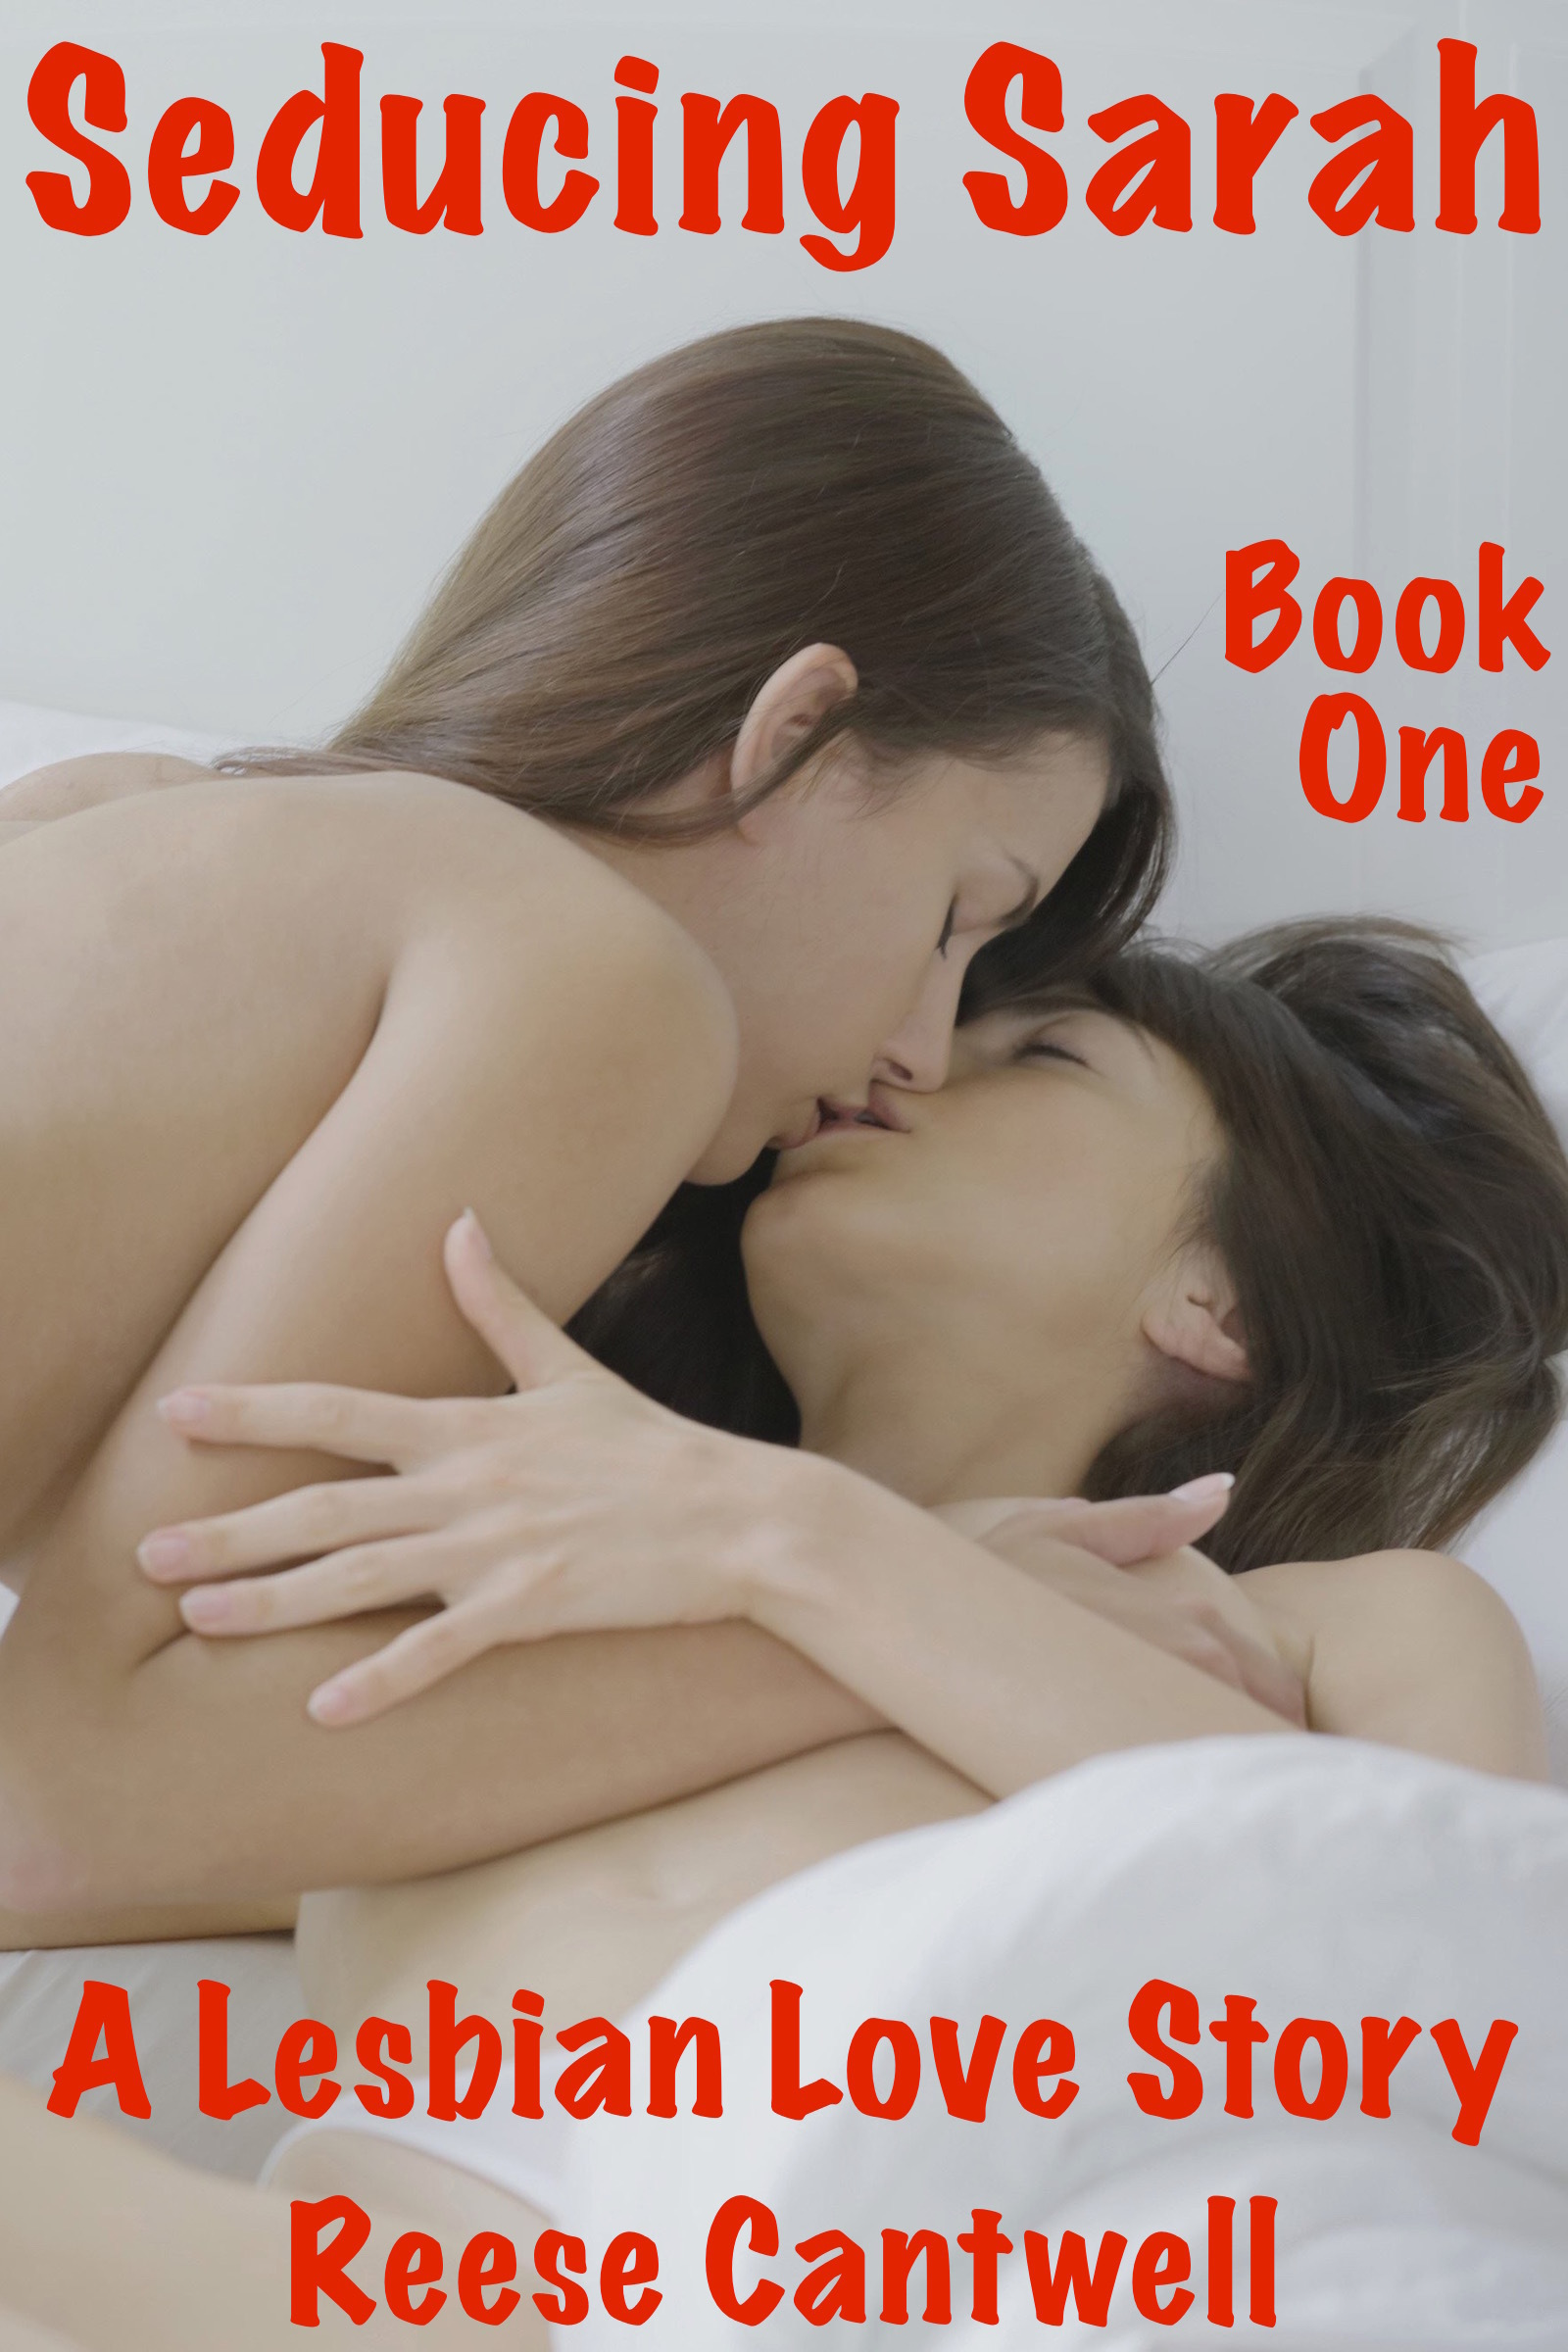 Seducing Sarah: Book One: A Lesbian Love Story Reese Cantwell